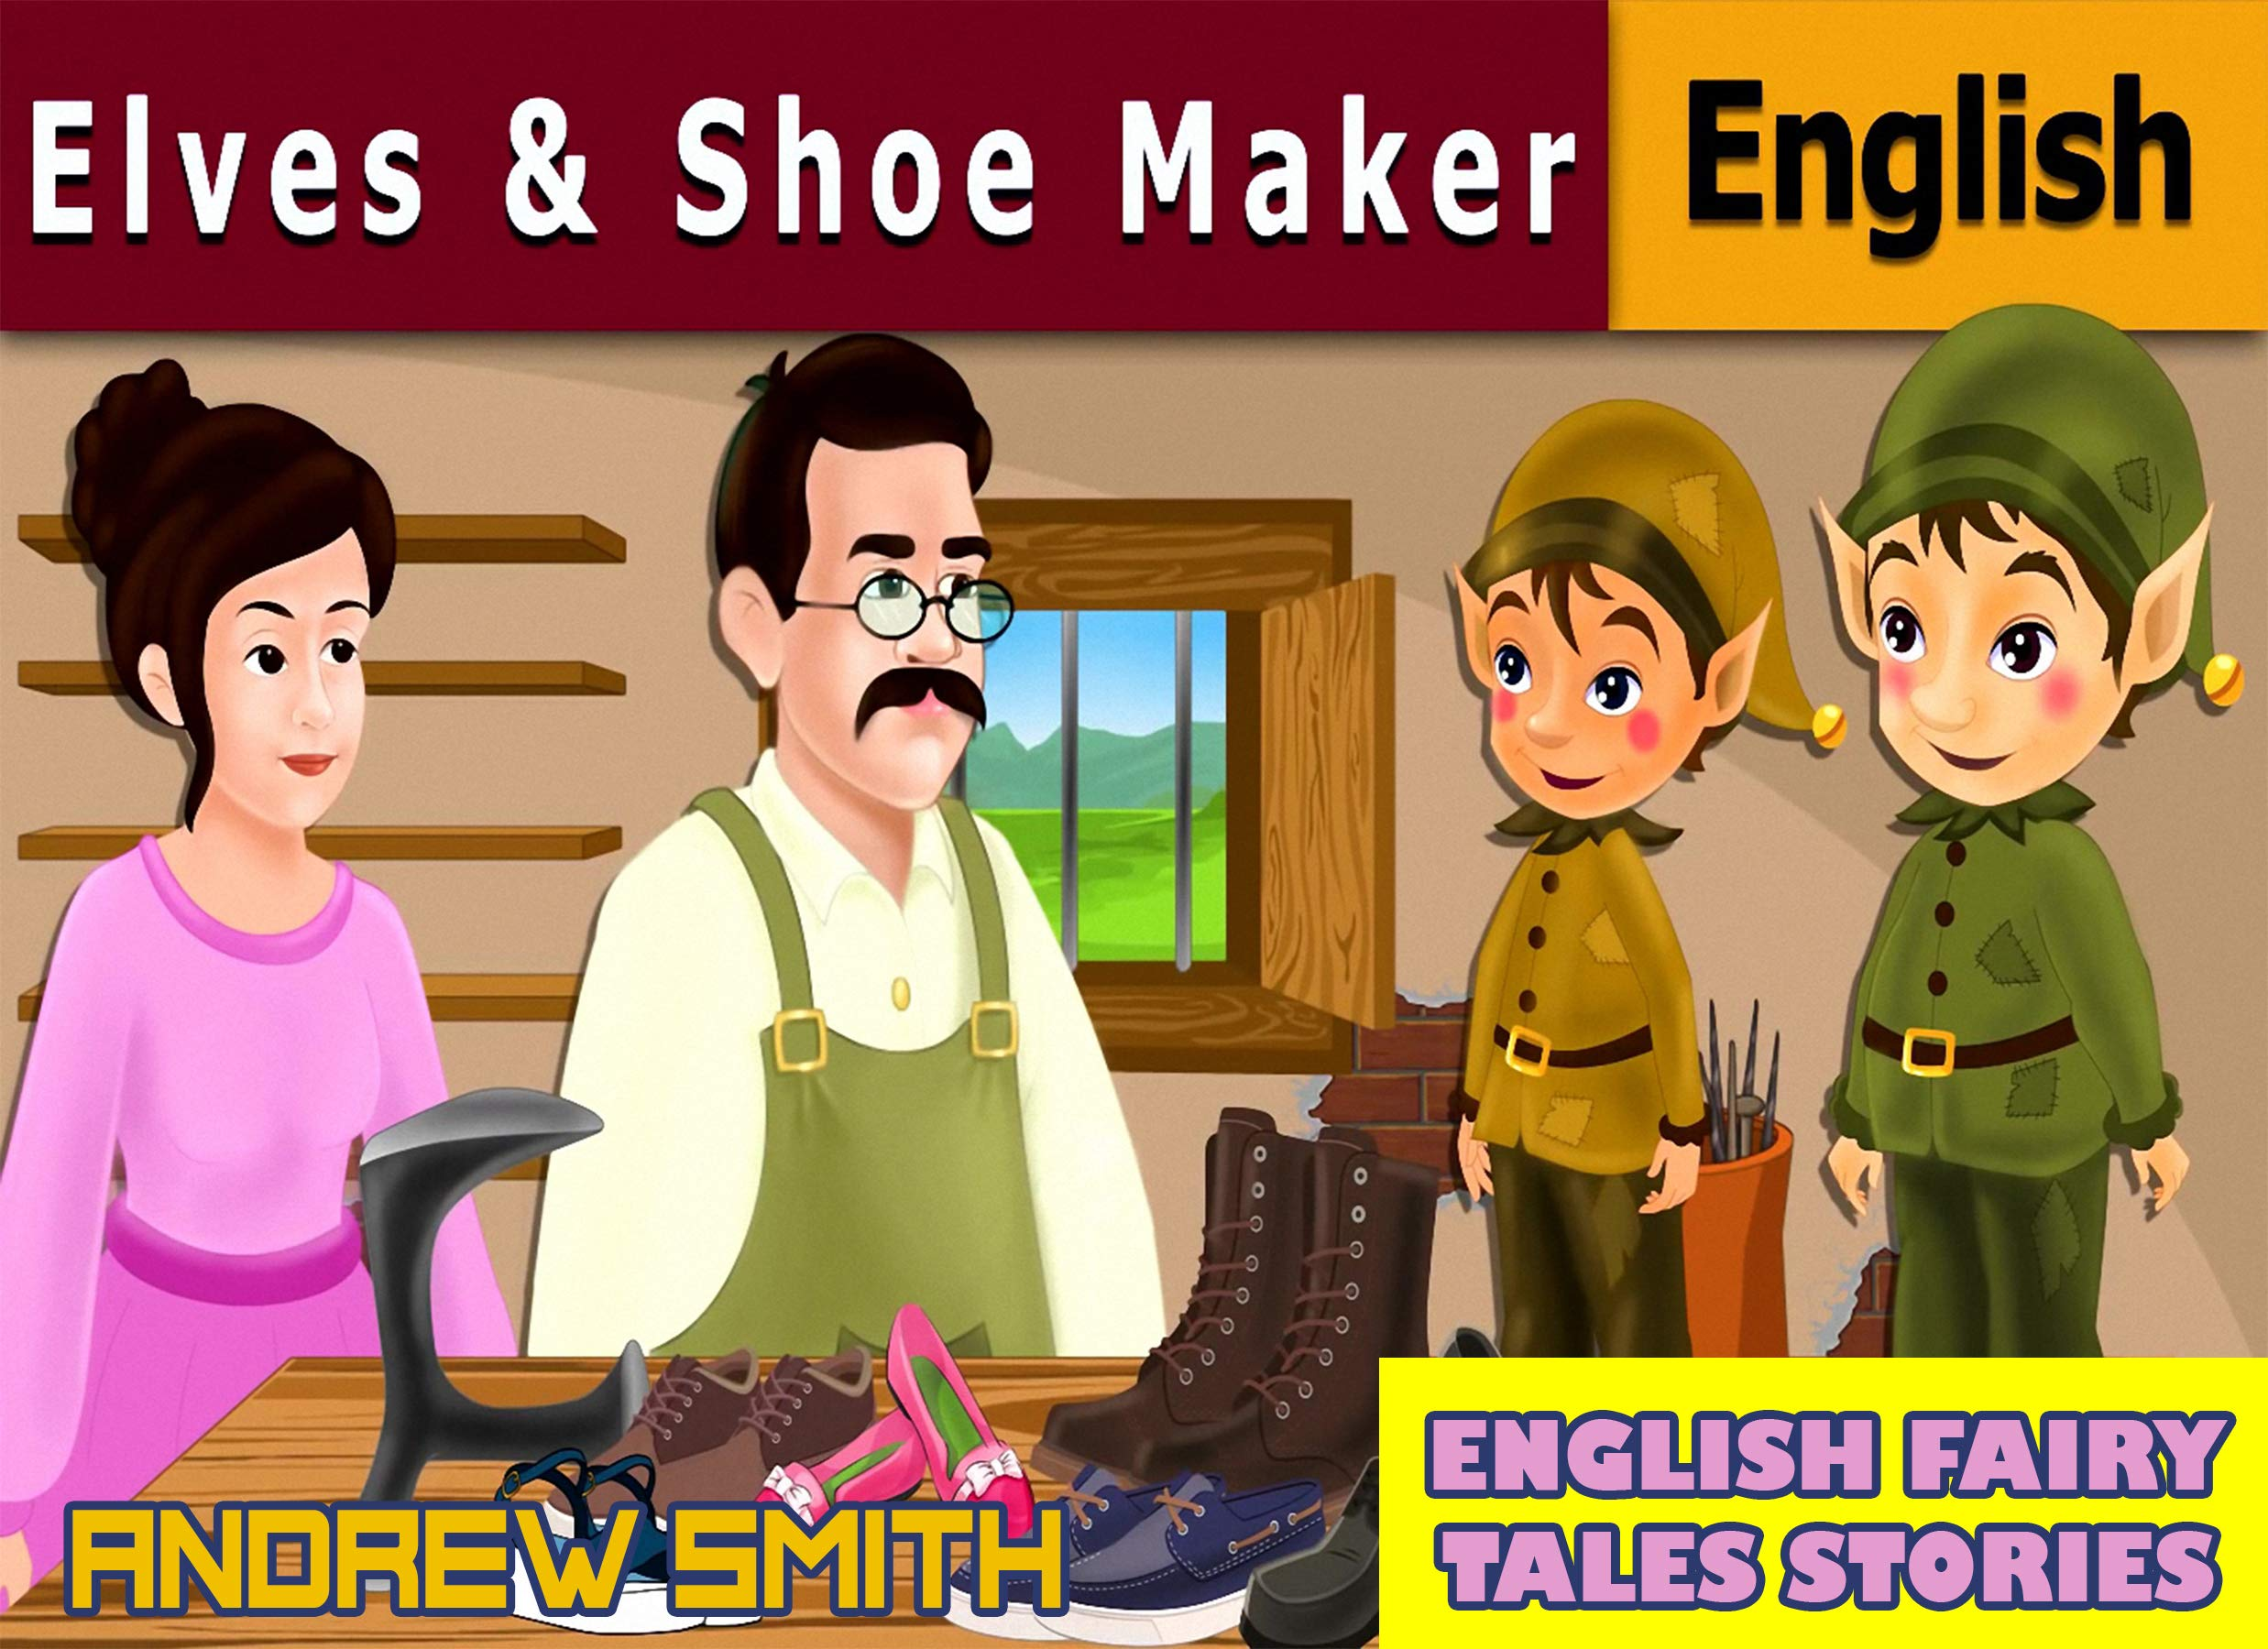 English Fairy Tales Stories: Elves And Shoe Maker - Great 5-Minute Fairy Tale Picture Book For Kids, Boys, Girls, Children Of All Age